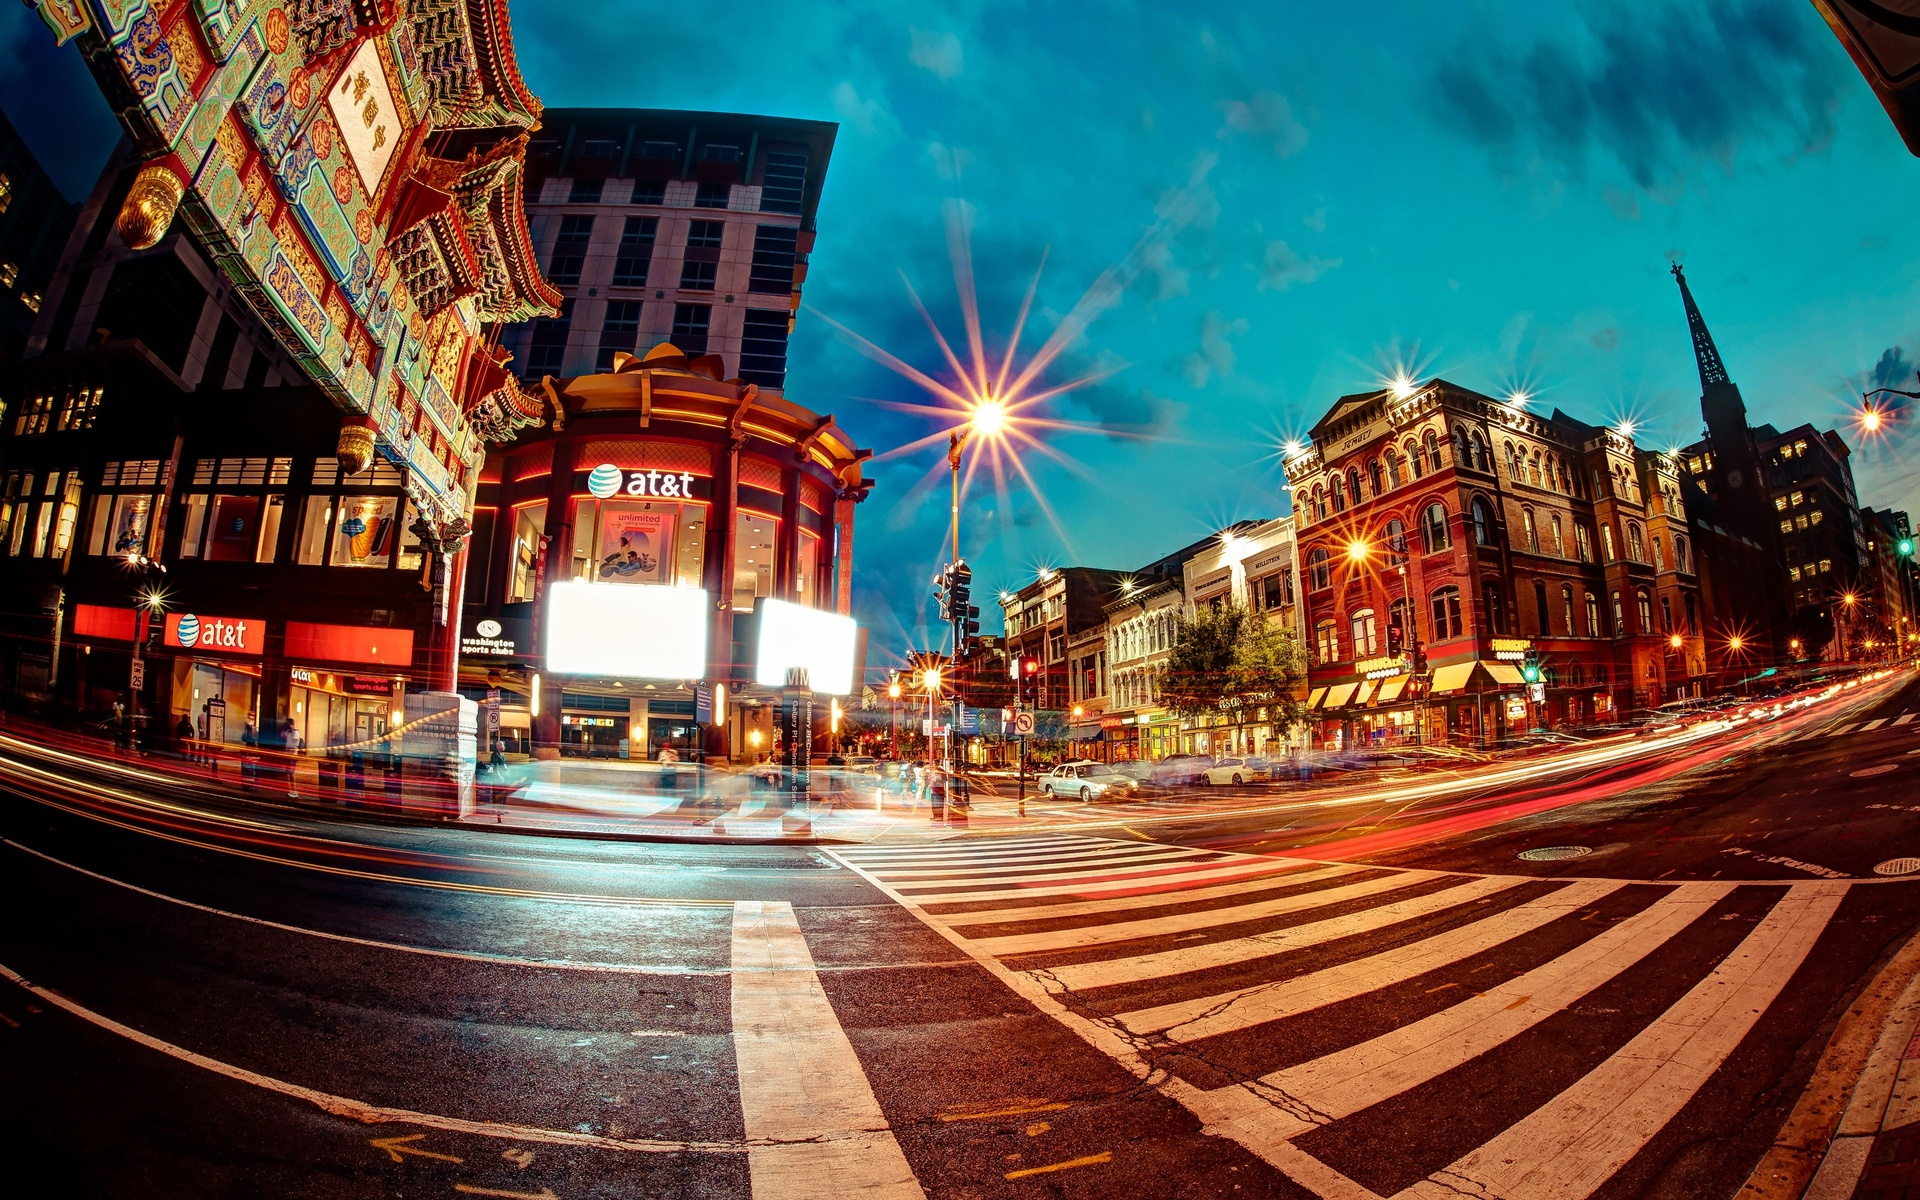 chinatown in washington, dc hd wallpaper | background image